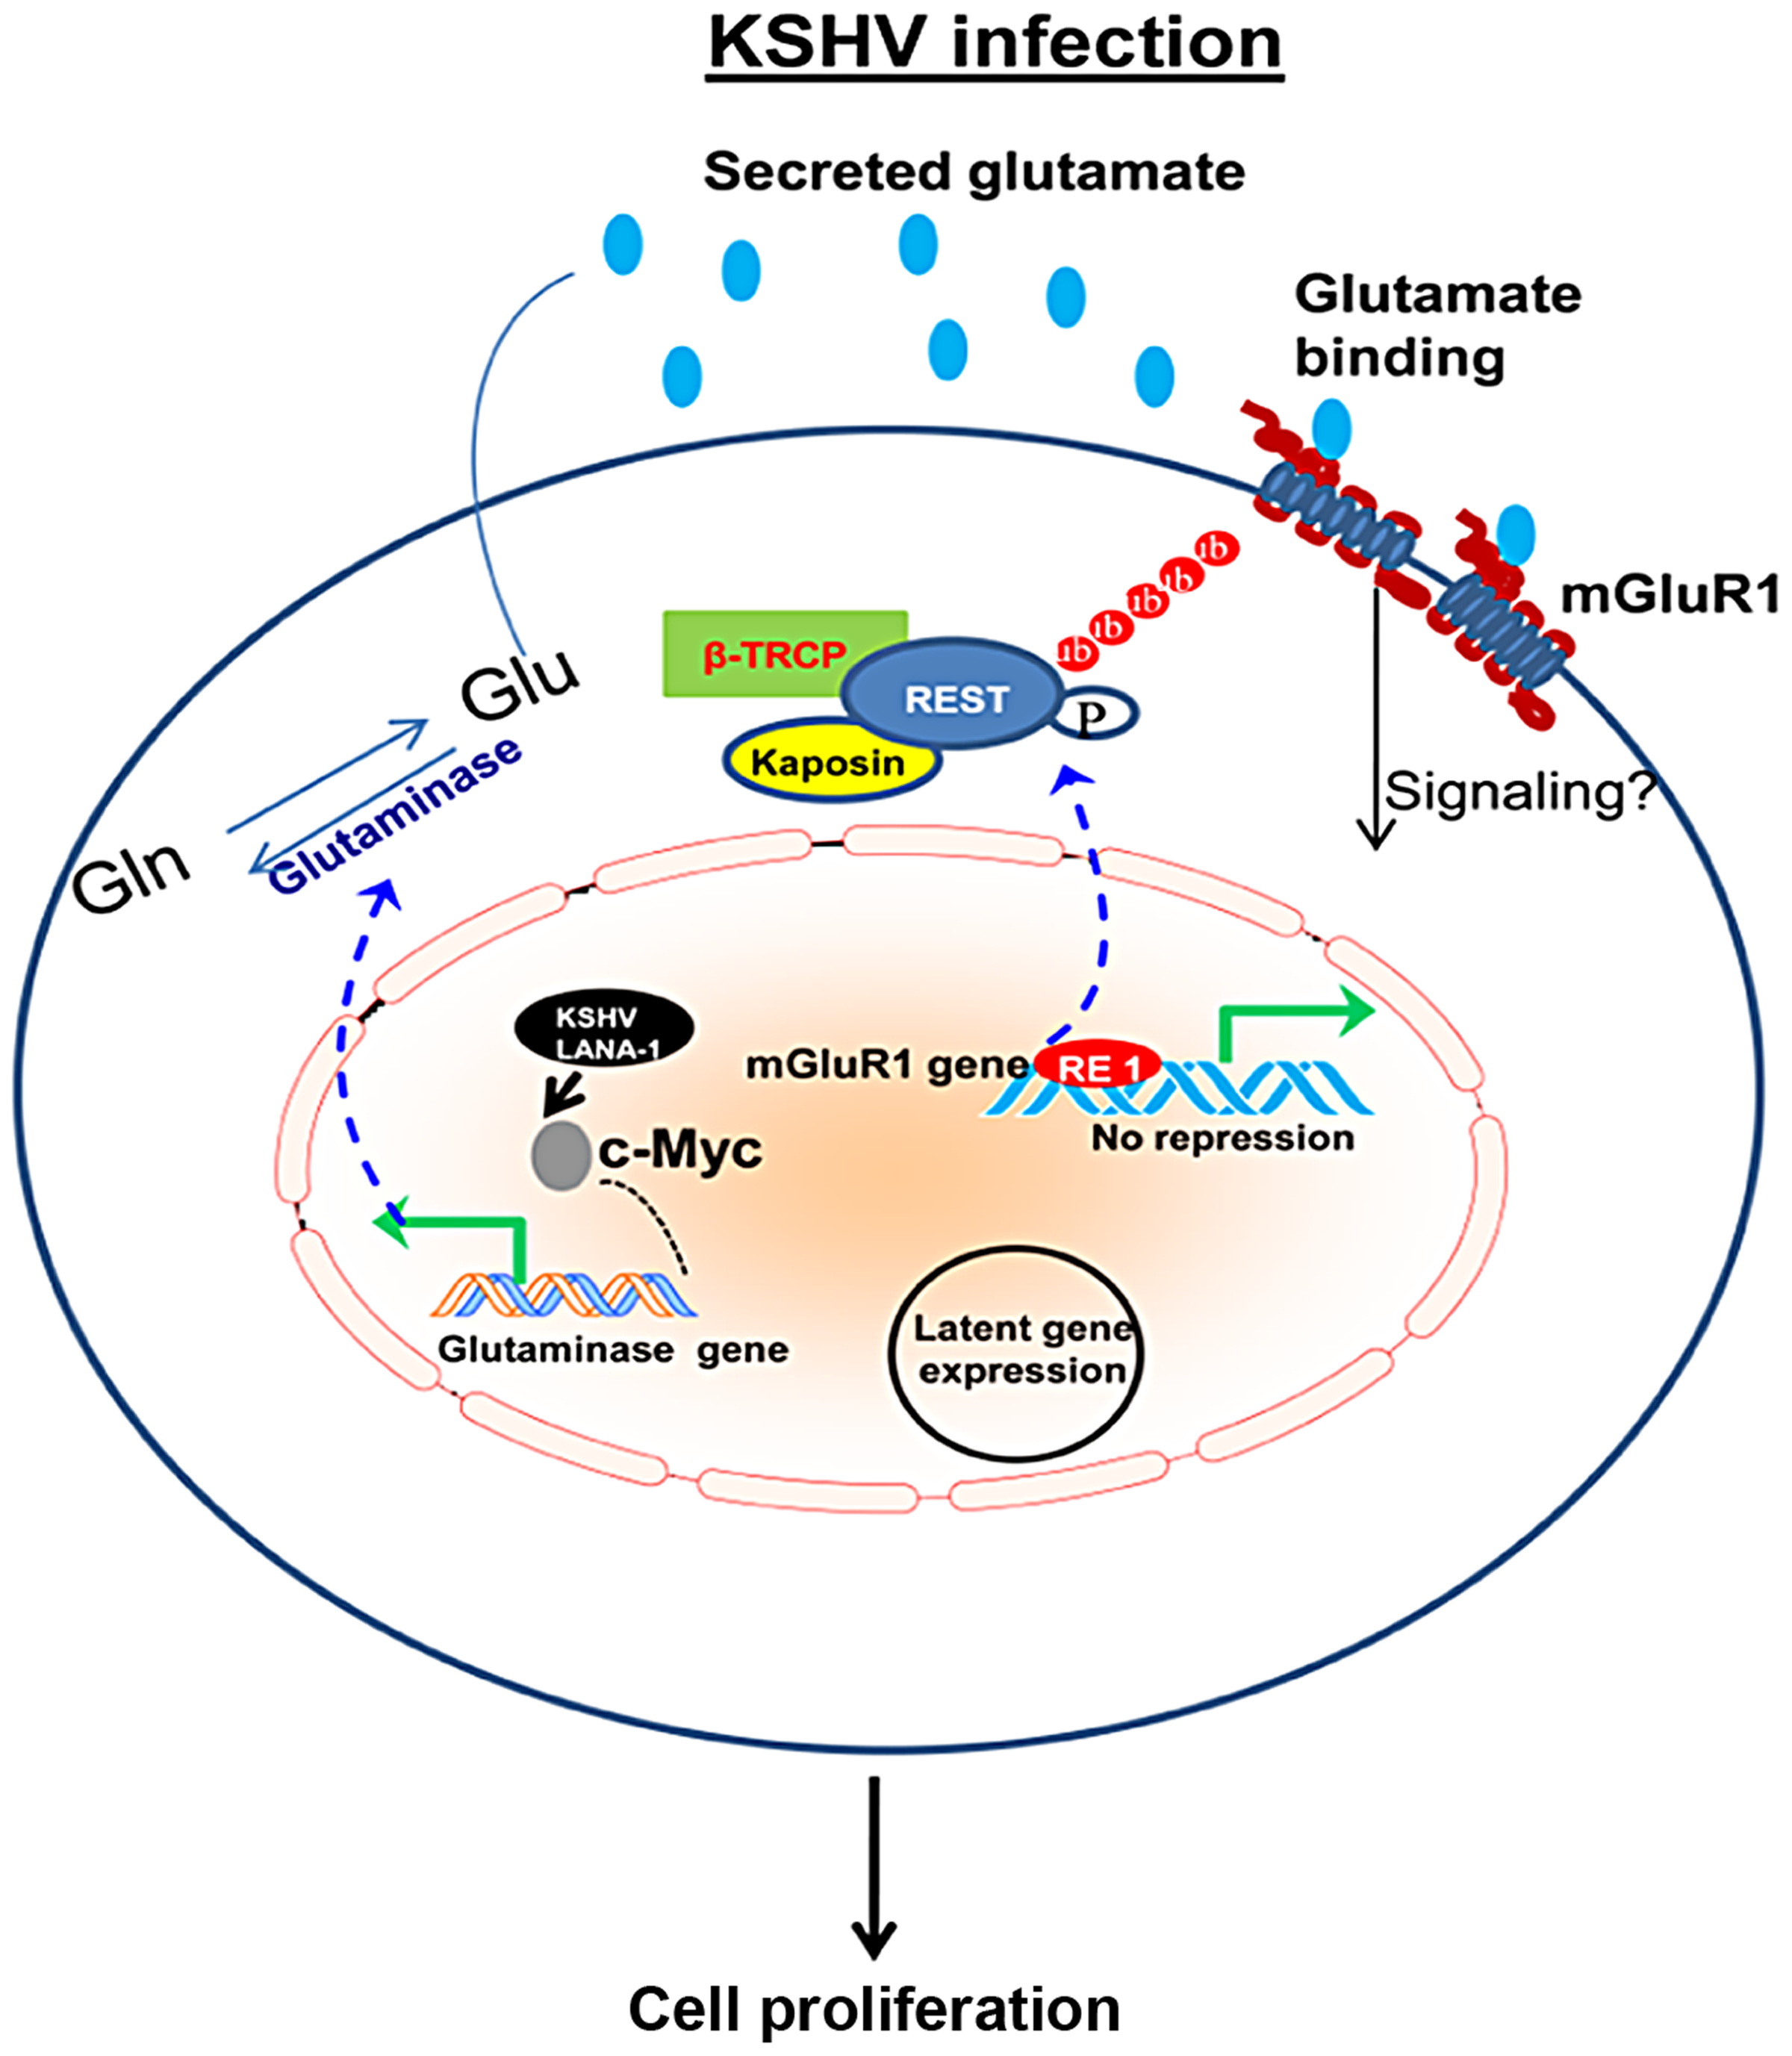 Schematic diagram showing the pathways for glutamate generation and mGluR1 upregulation in KSHV infected cells.